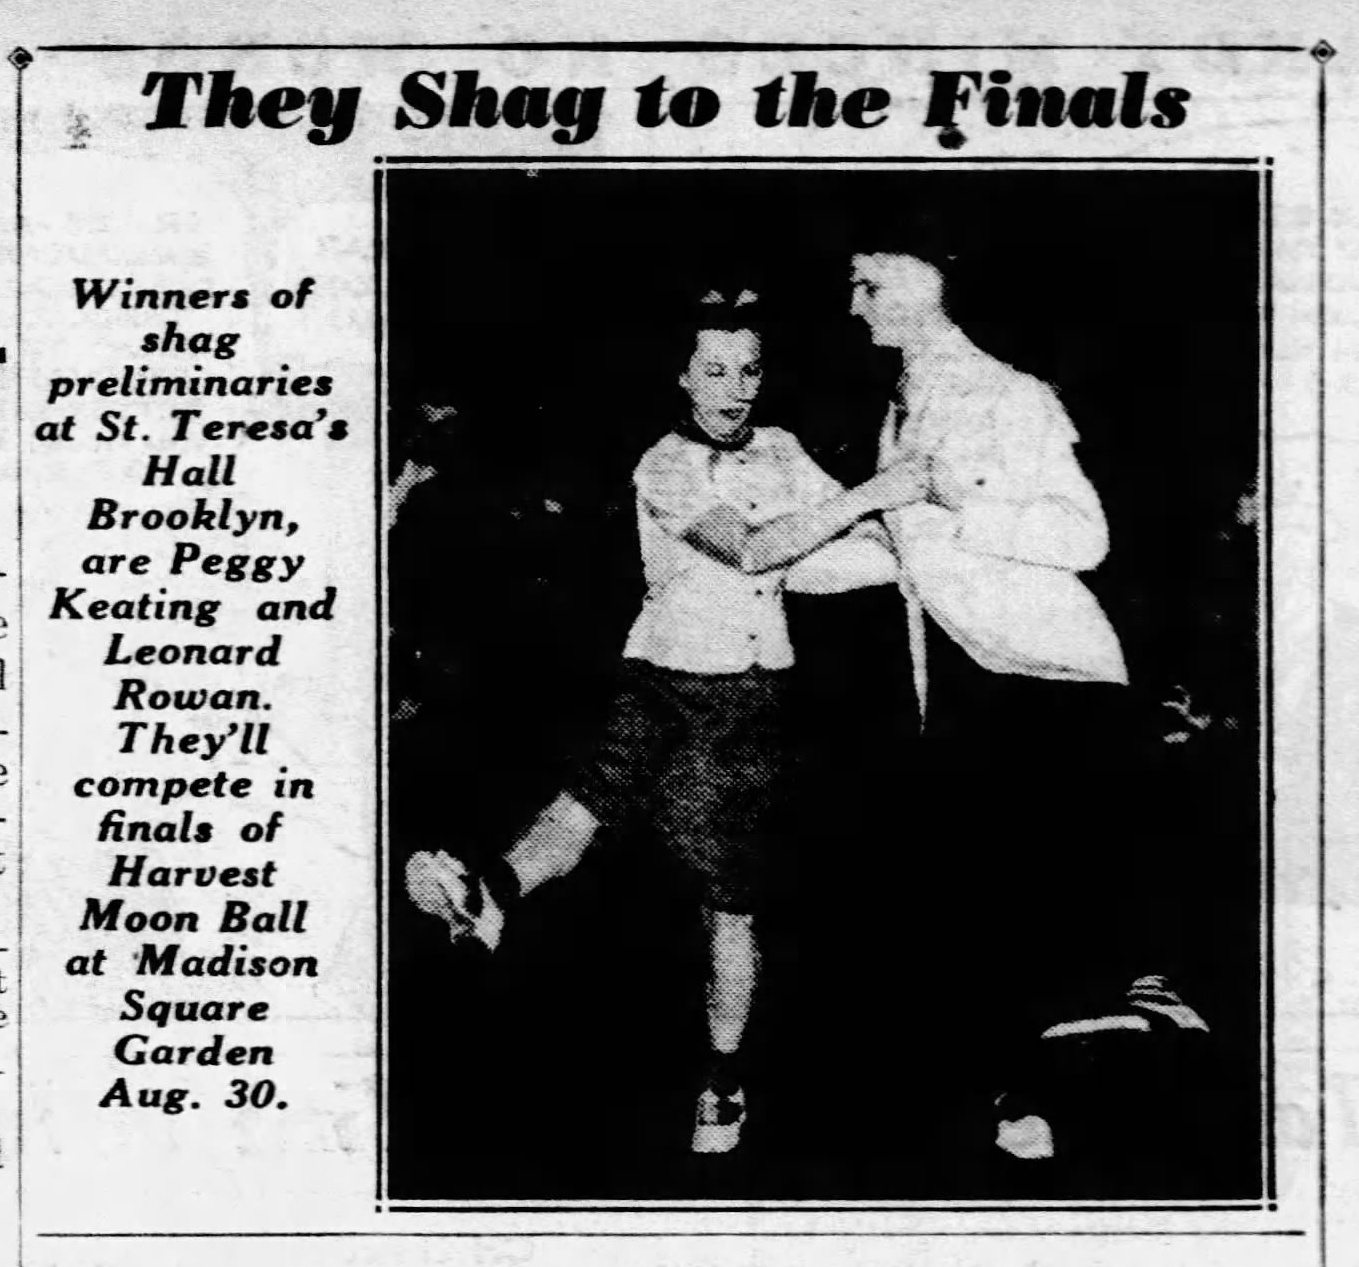 1939 picture of shag couple prelims Daily_News_Tue__Aug_22__1939_